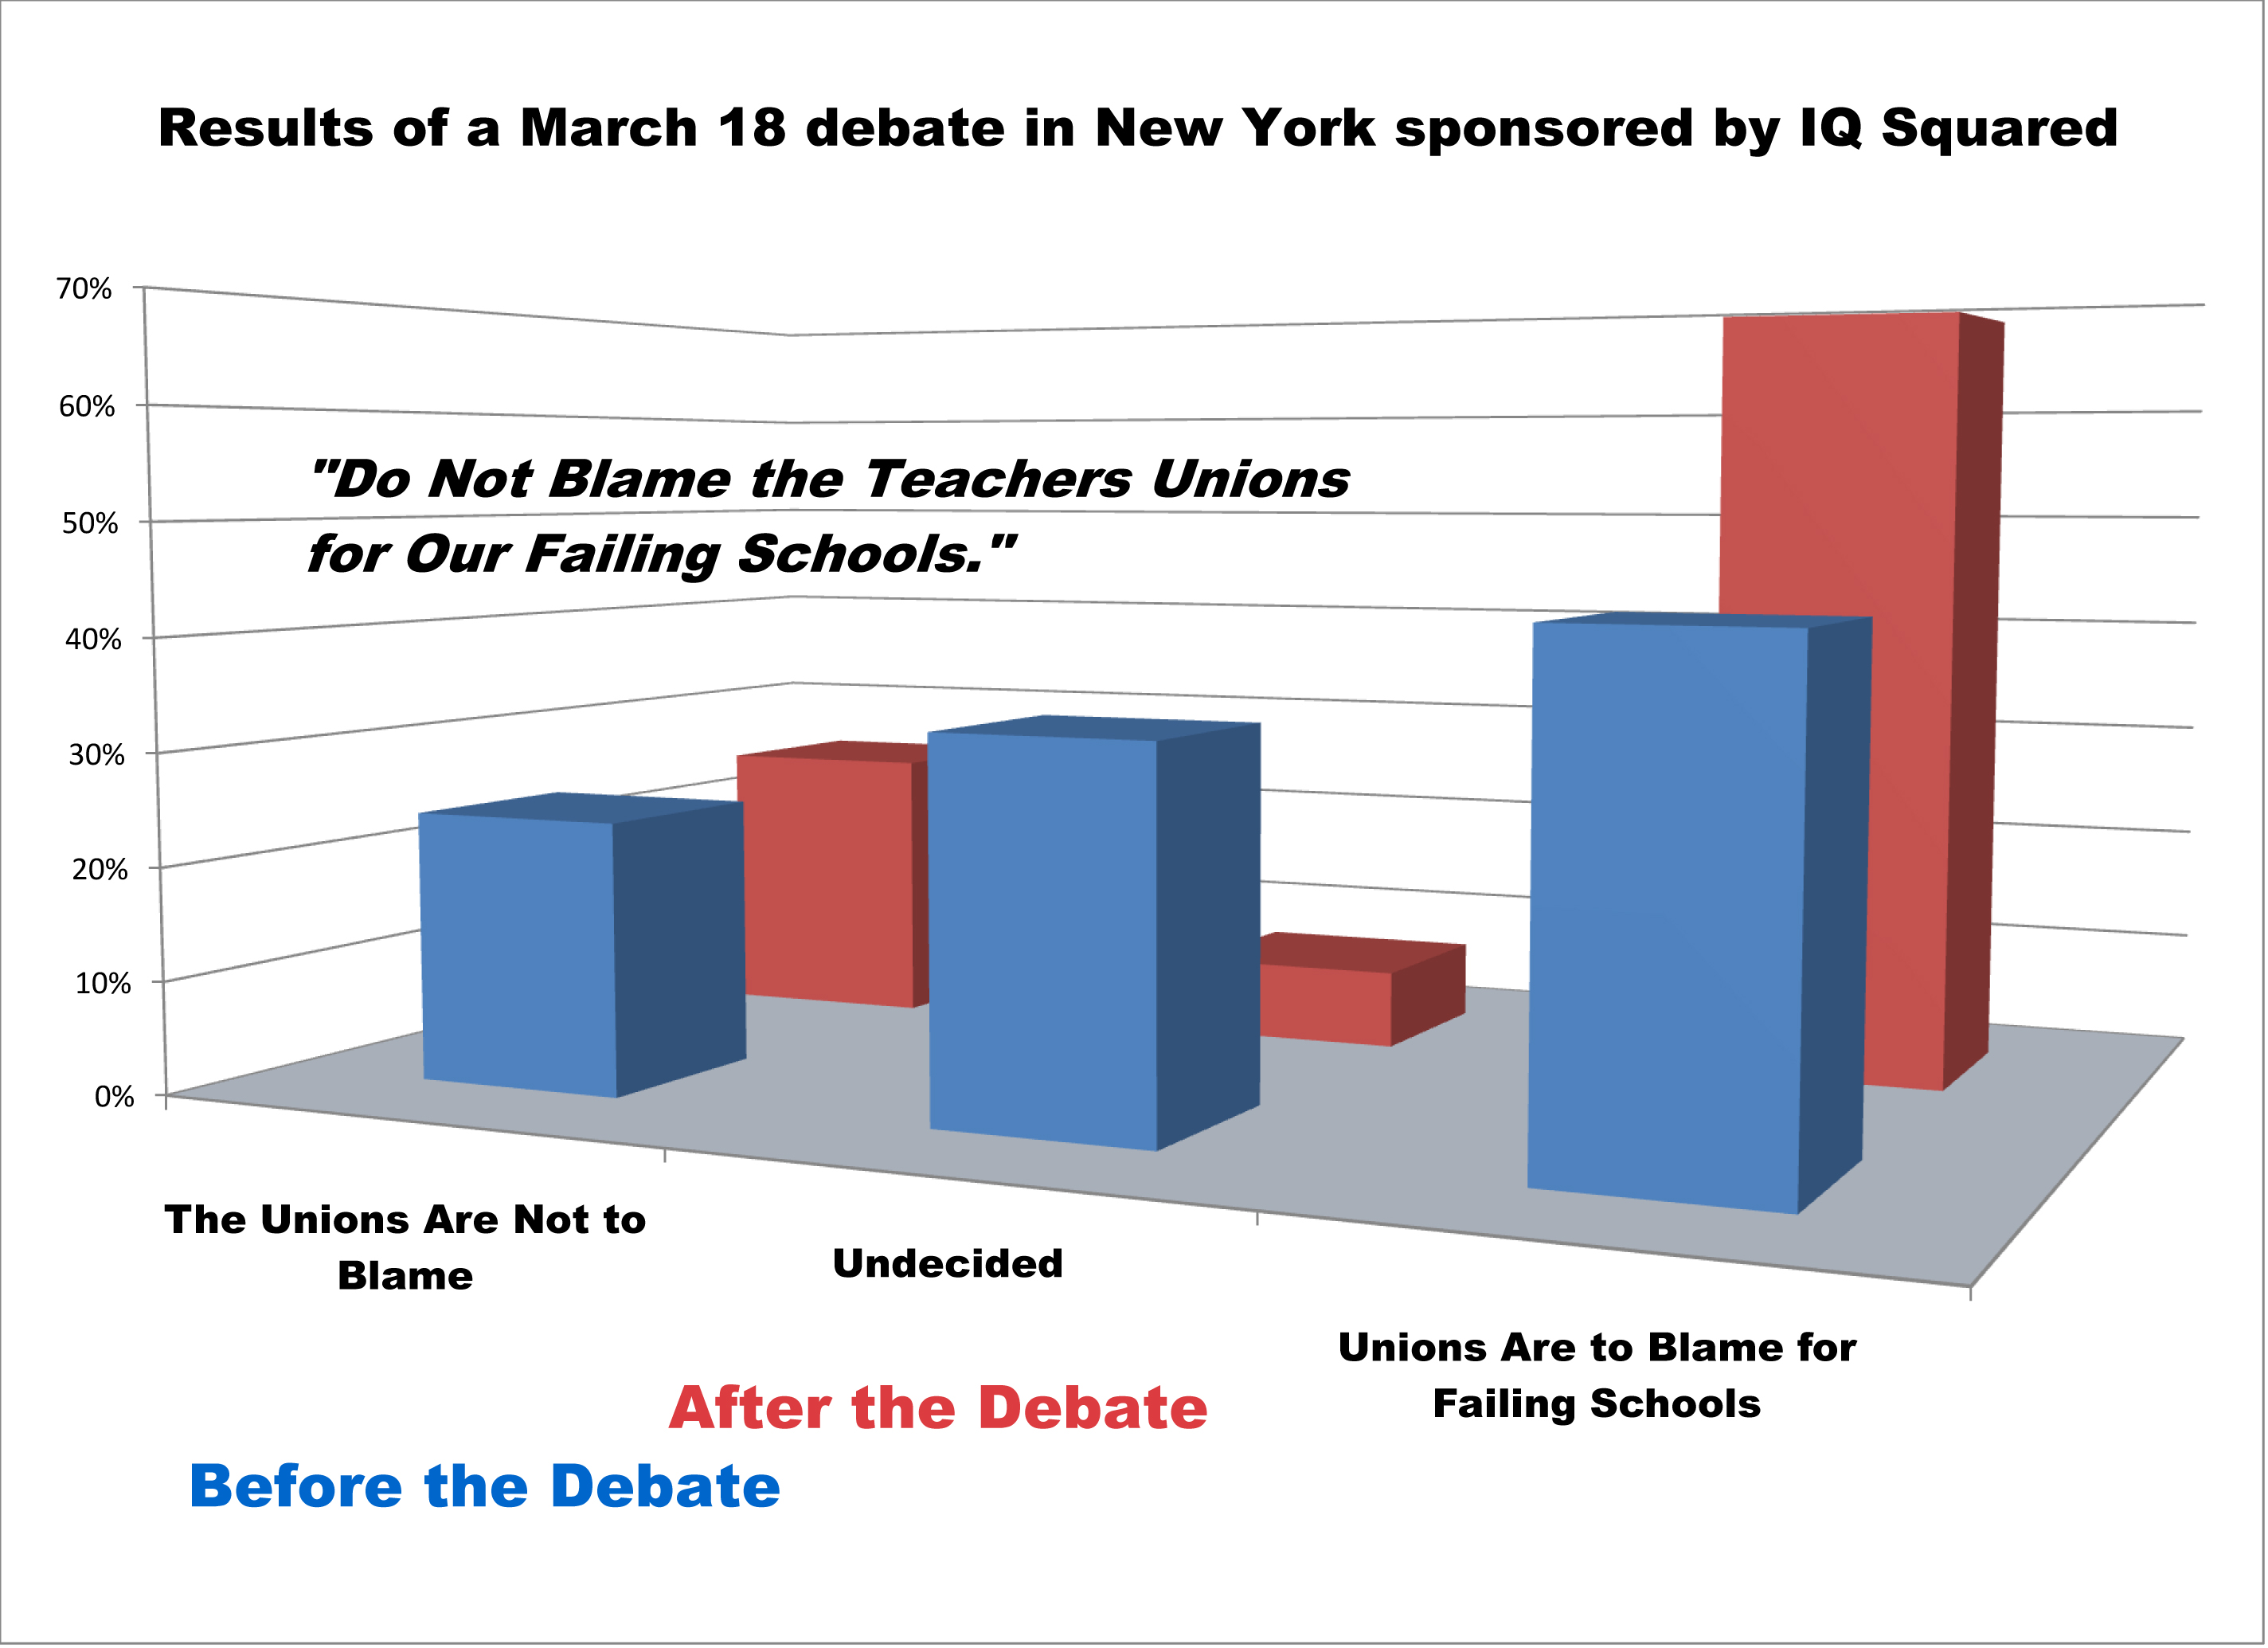 Teachers Union Supporters Lose a Debate on Failing Schools | The ...